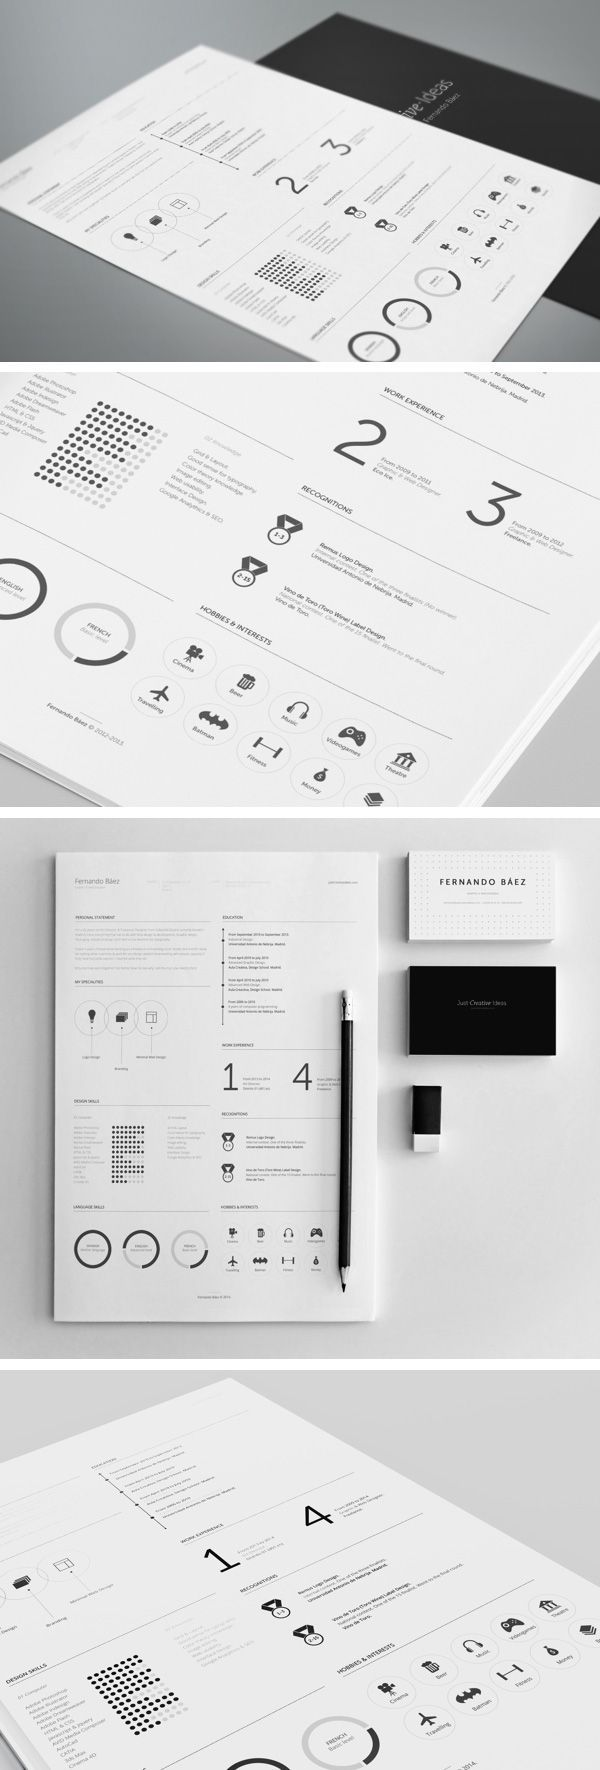 Designer & Developer Resume Template, #AI, #Business_Card, #CV, #Free, #Graphic #Design, #Print, #Resource, #Resume, #Template, #Vector